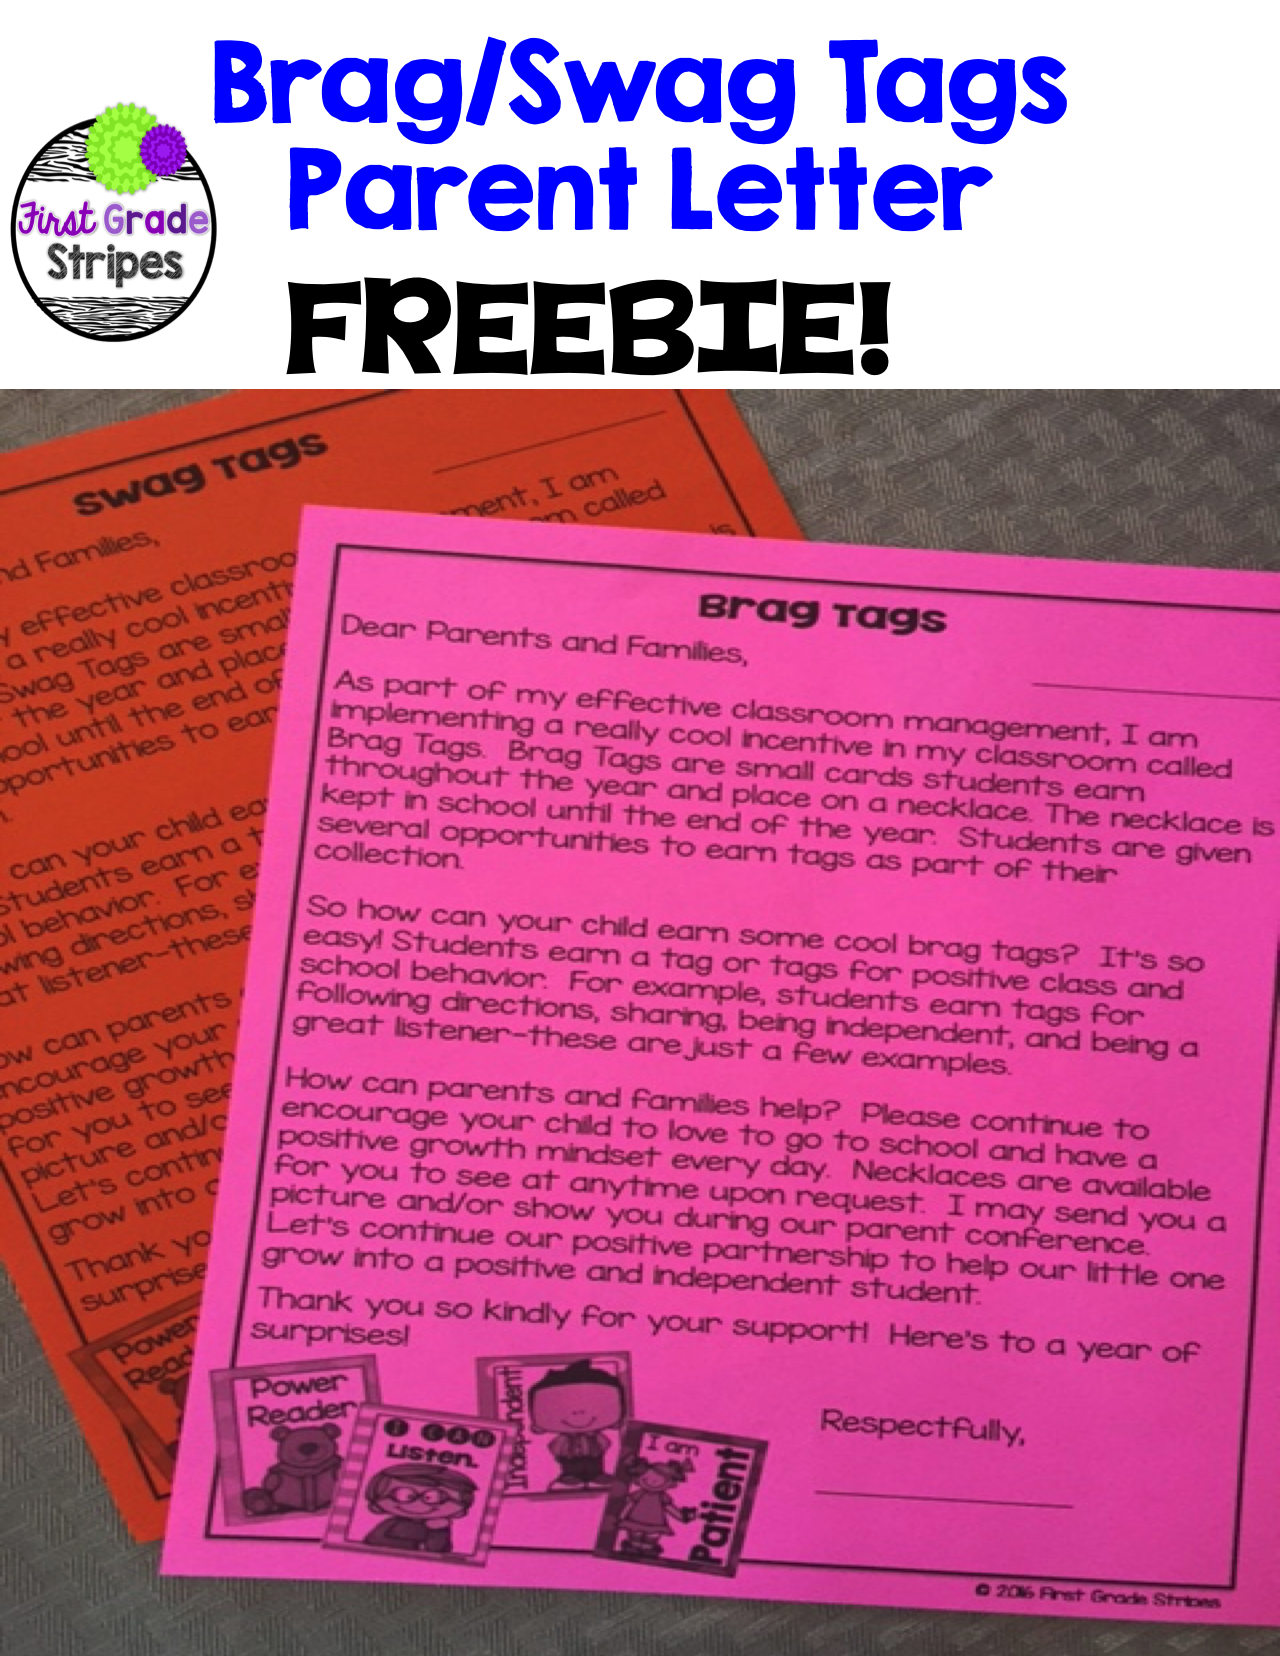 Classroom procedures classroom organization classroom management - Free Letter To Parents Explaining Brag Swag Tags In The Classroom